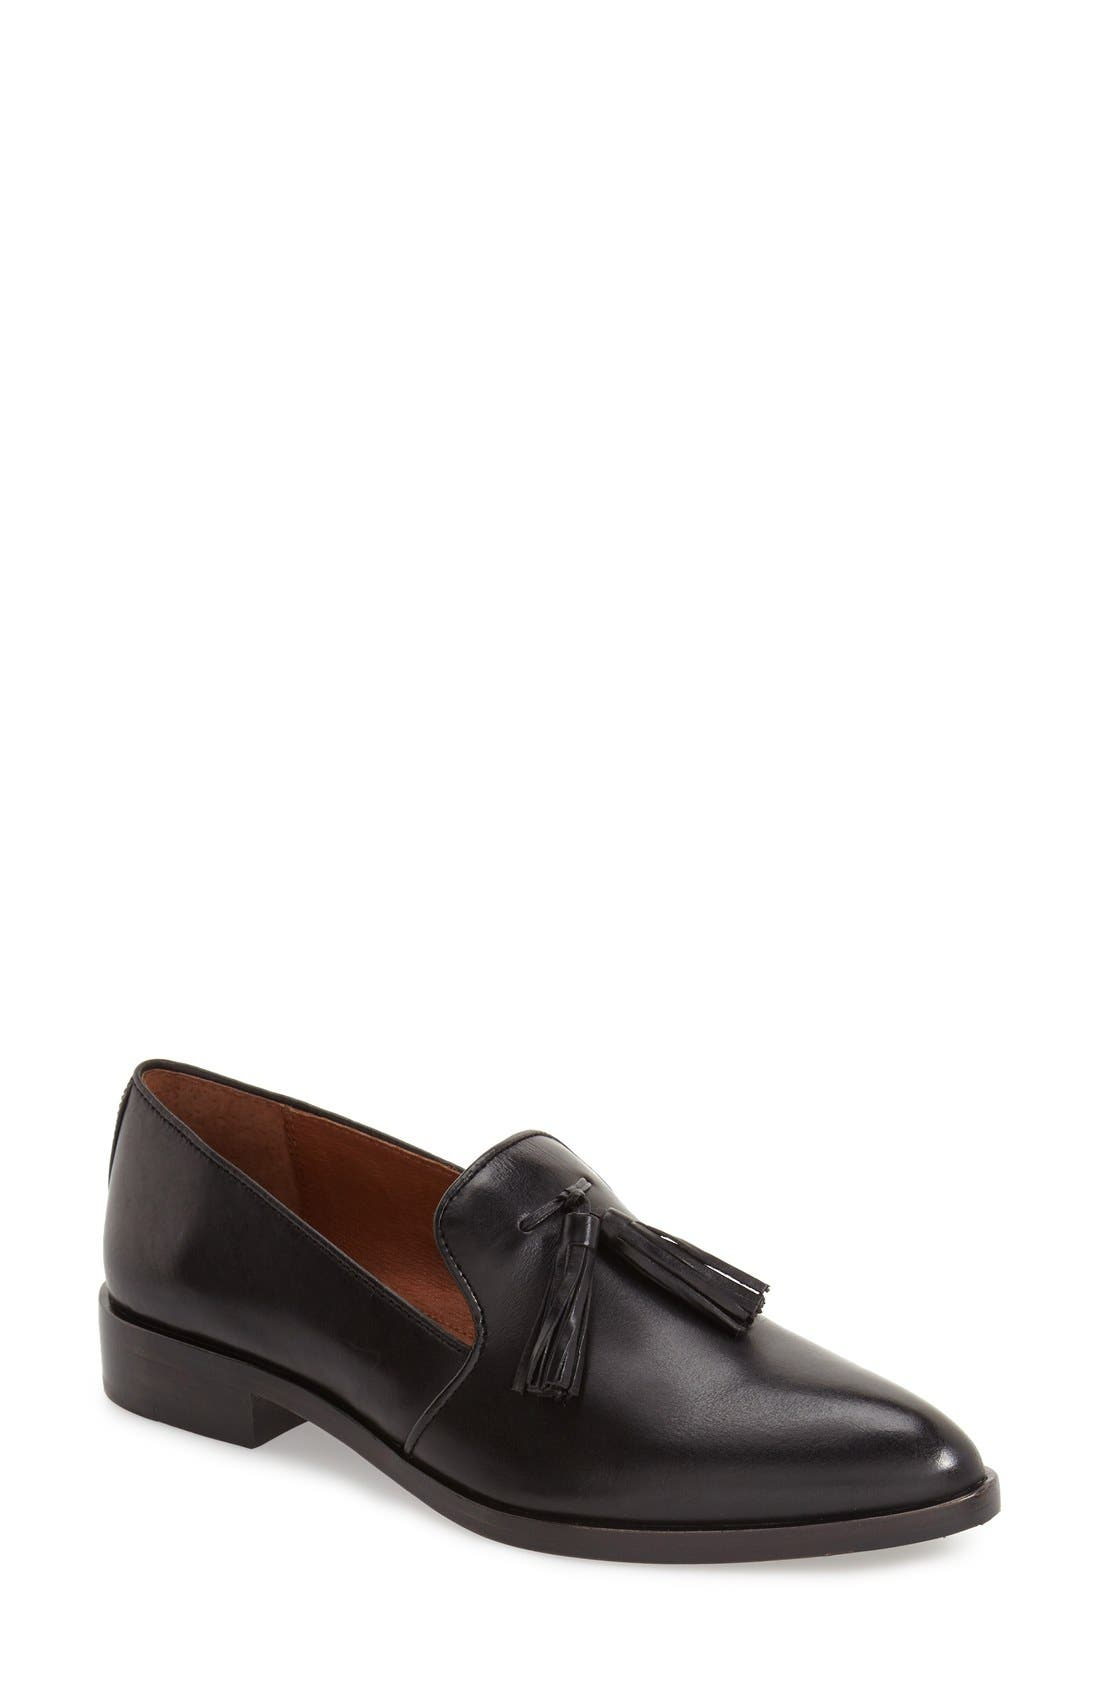 Alternate Image 1 Selected - Frye 'Erica' Venetian Loafer (Women)